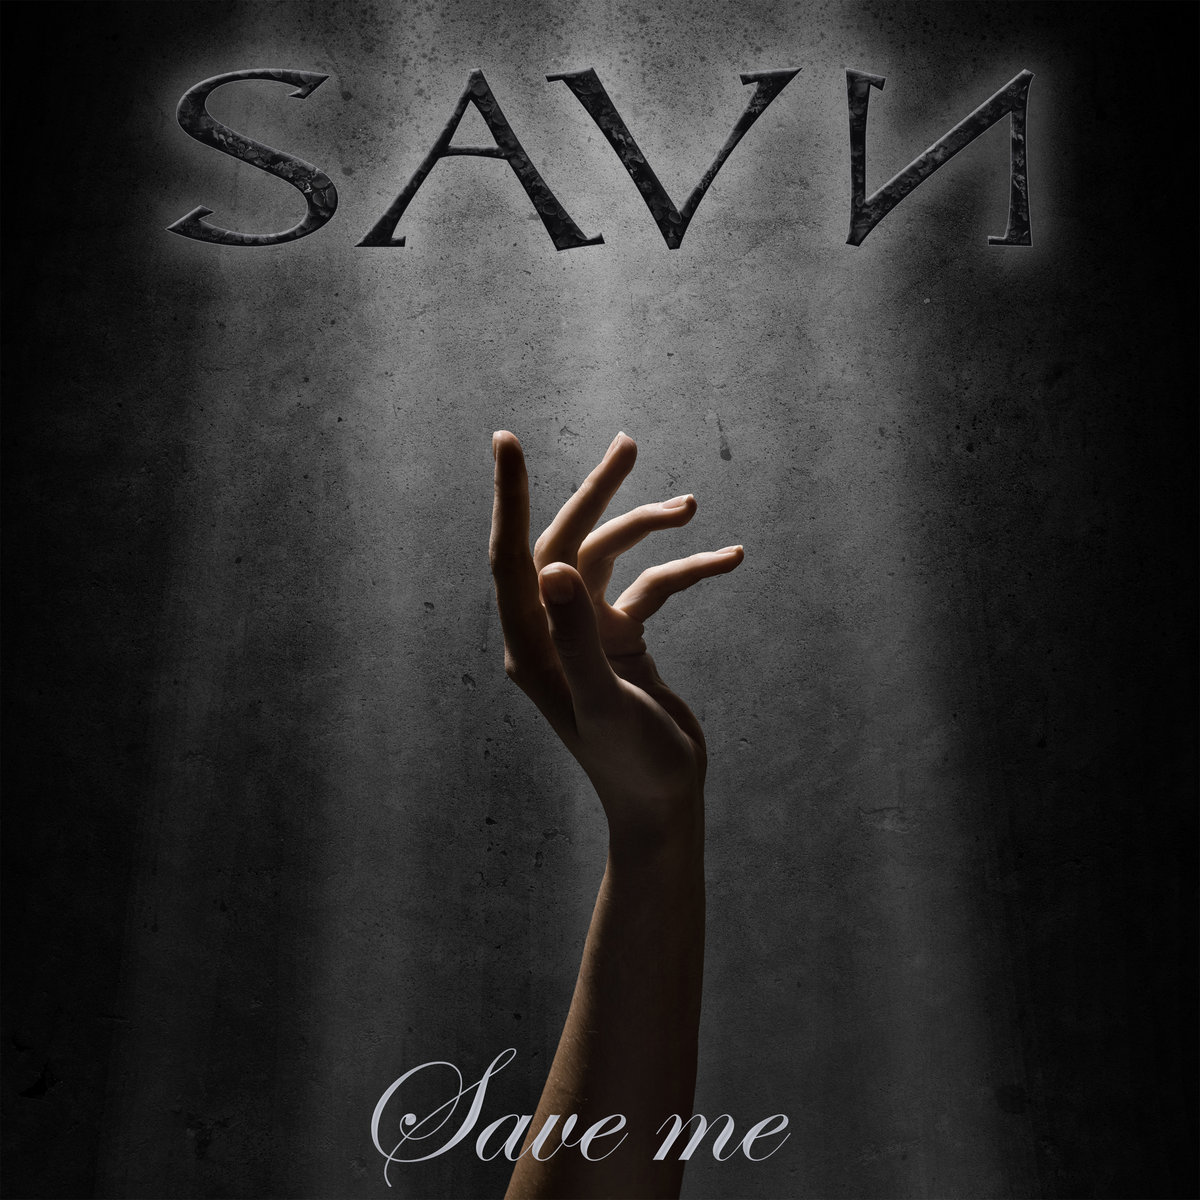 Save me by Savn